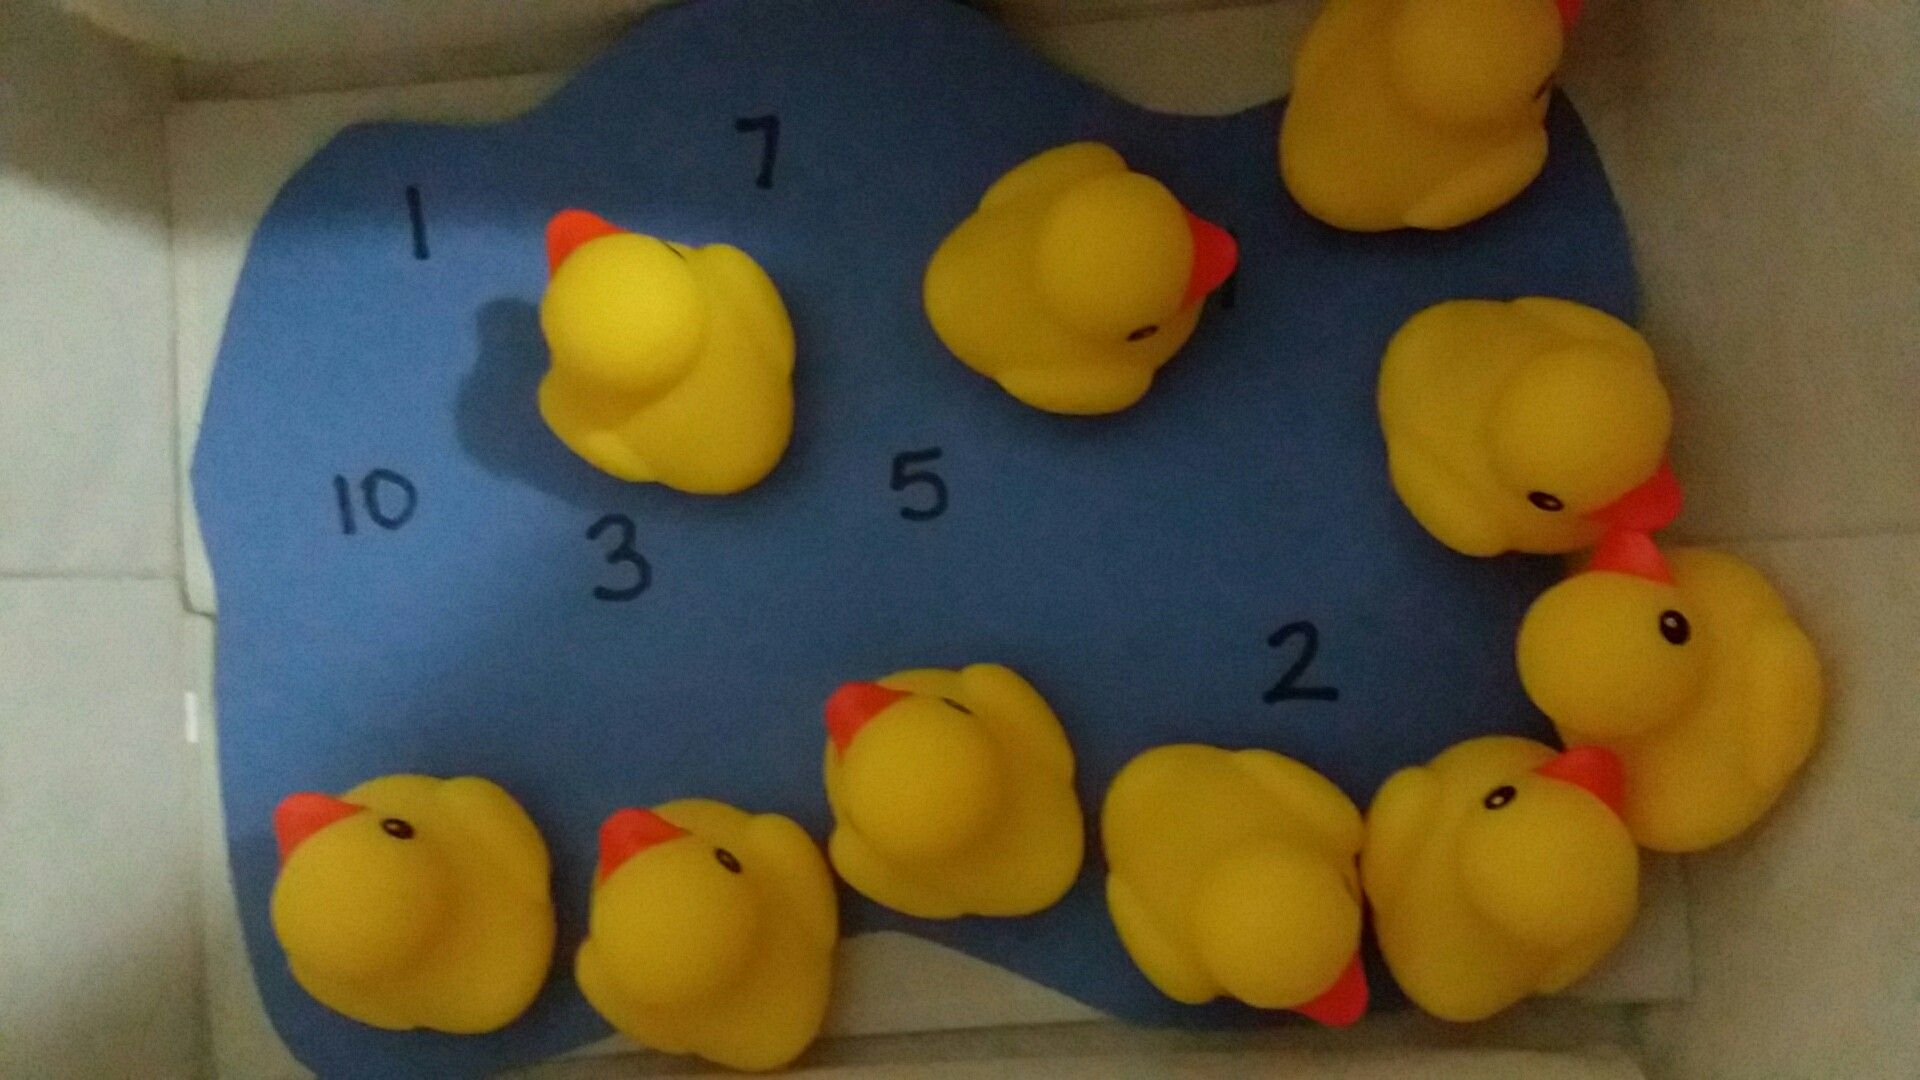 10 Little Rubber Ducks By Eric Carle Number Recognition Activity For Preschool And Kindergarten Homesch Preschool Games Crafts For Kids Homeschool Kindergarten